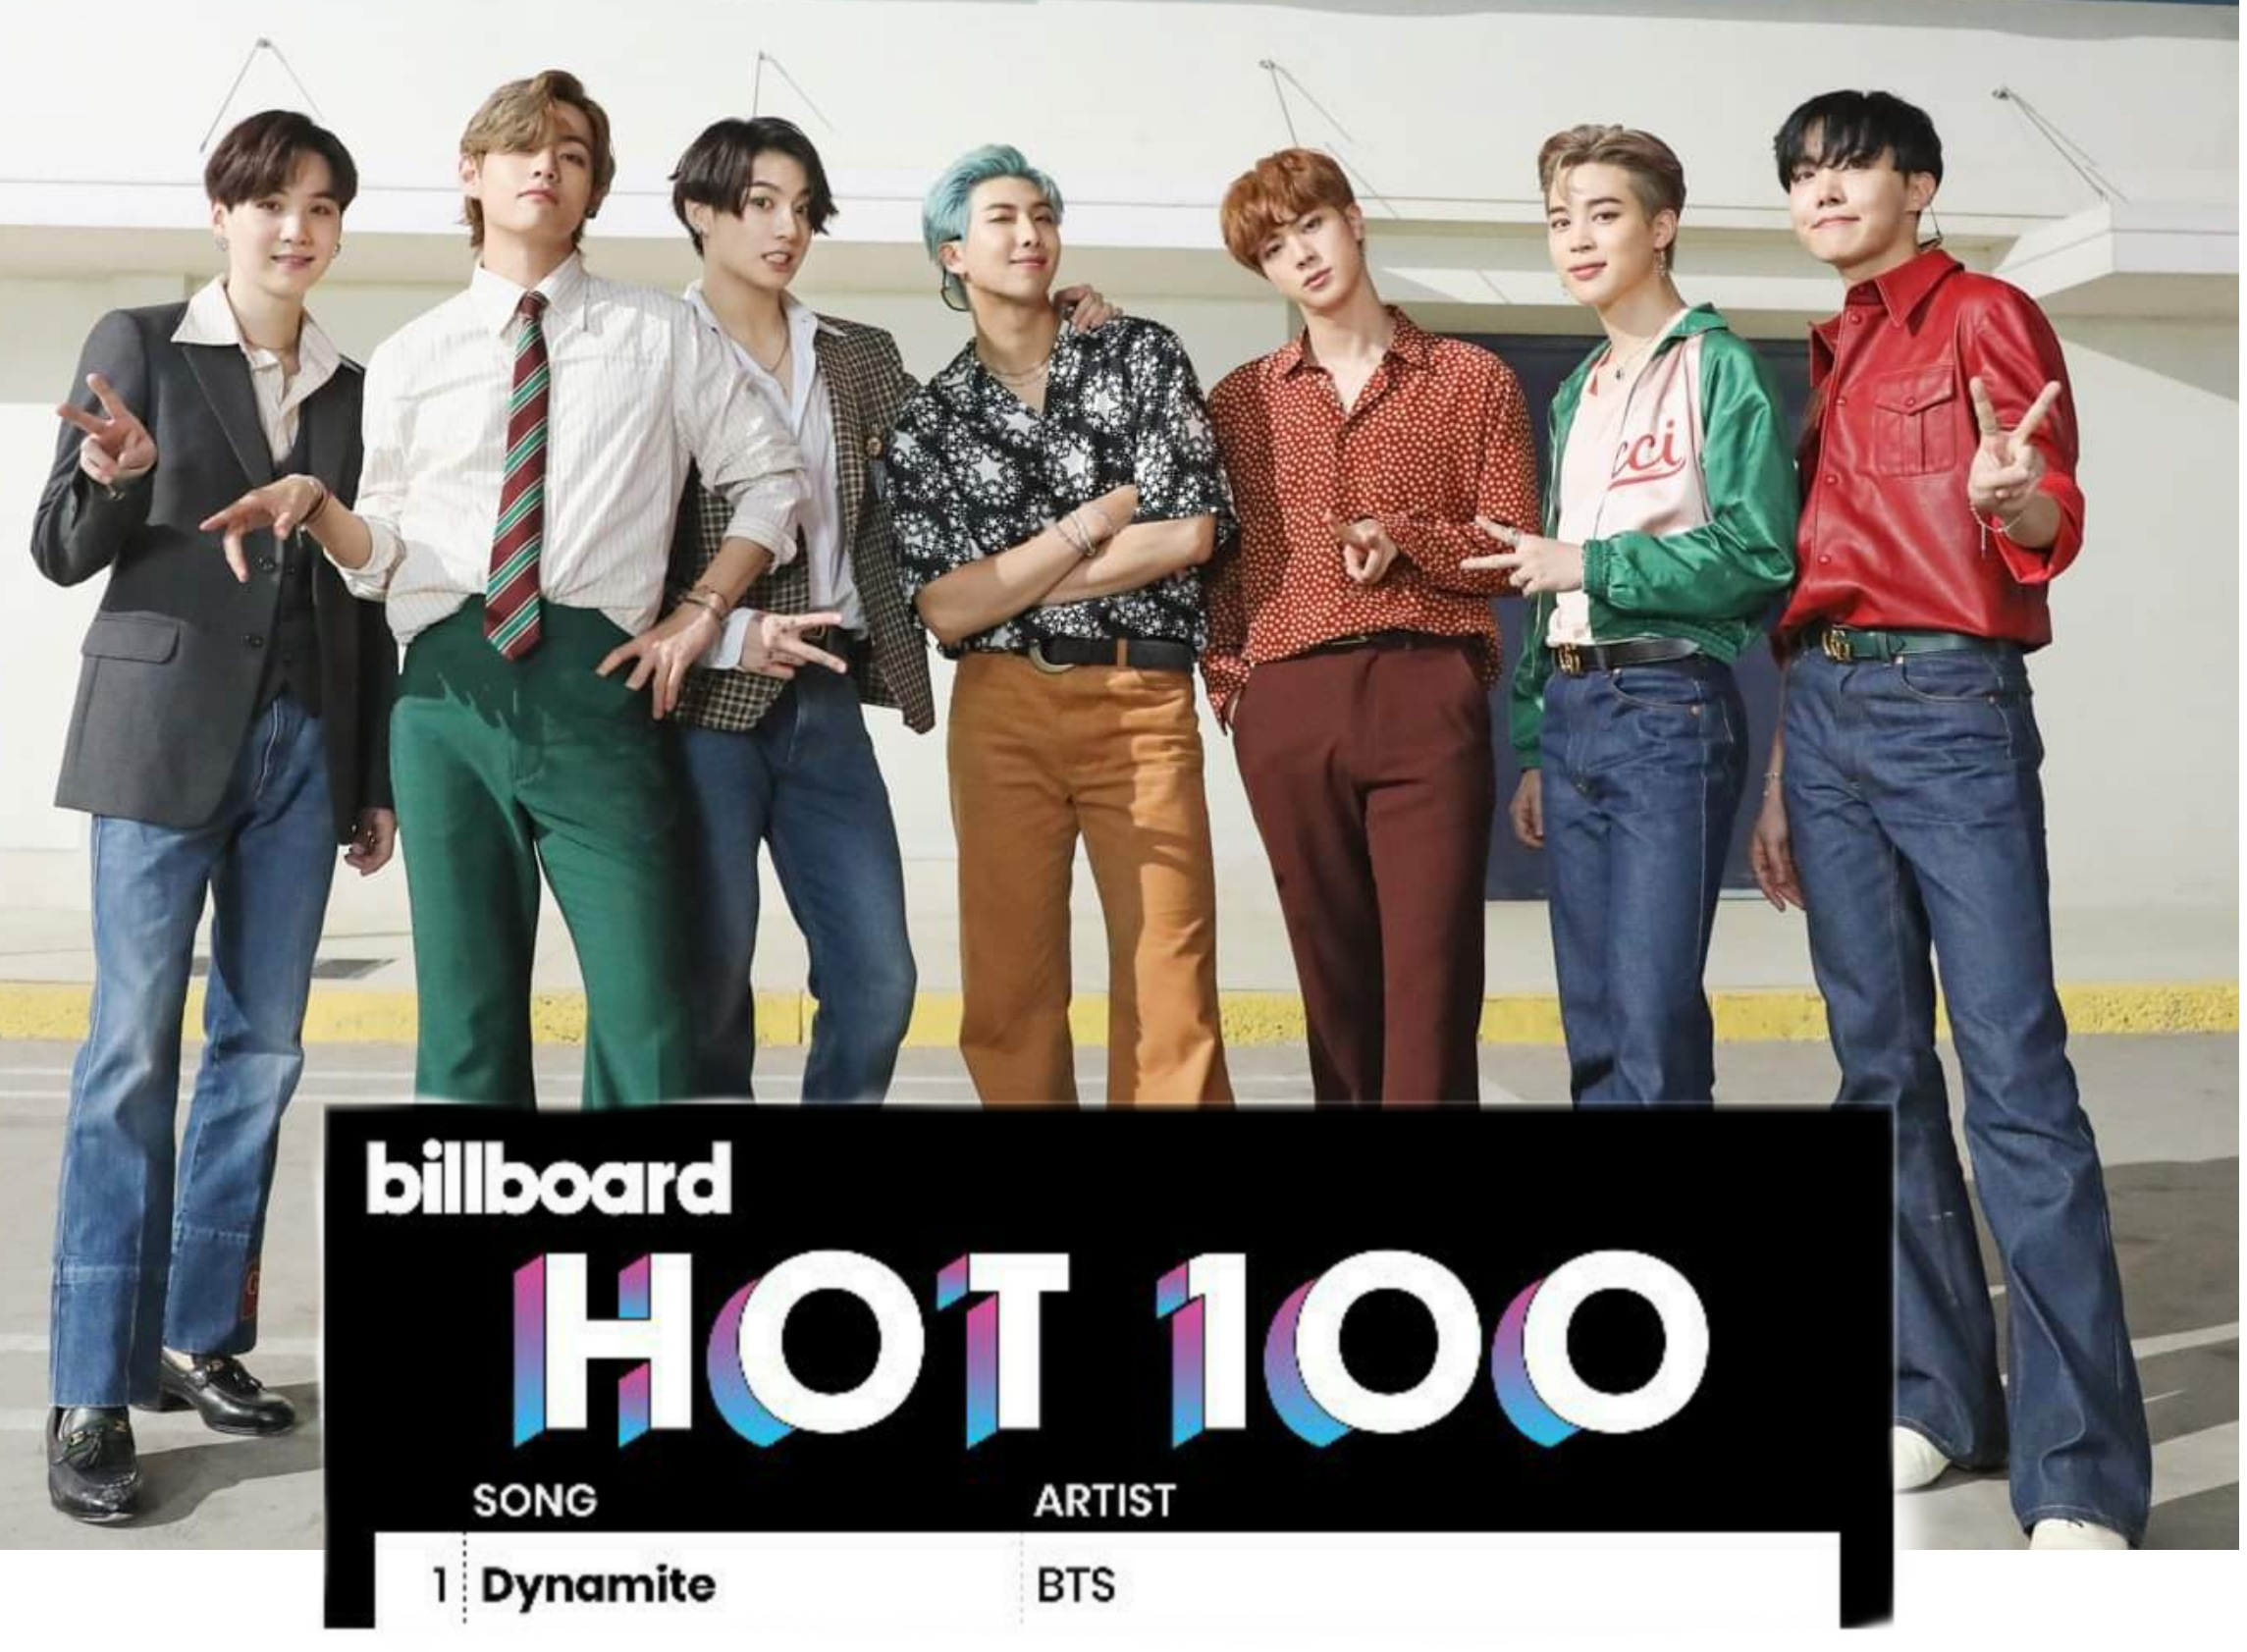 BTS ranked #1 On Billboard Hot 100